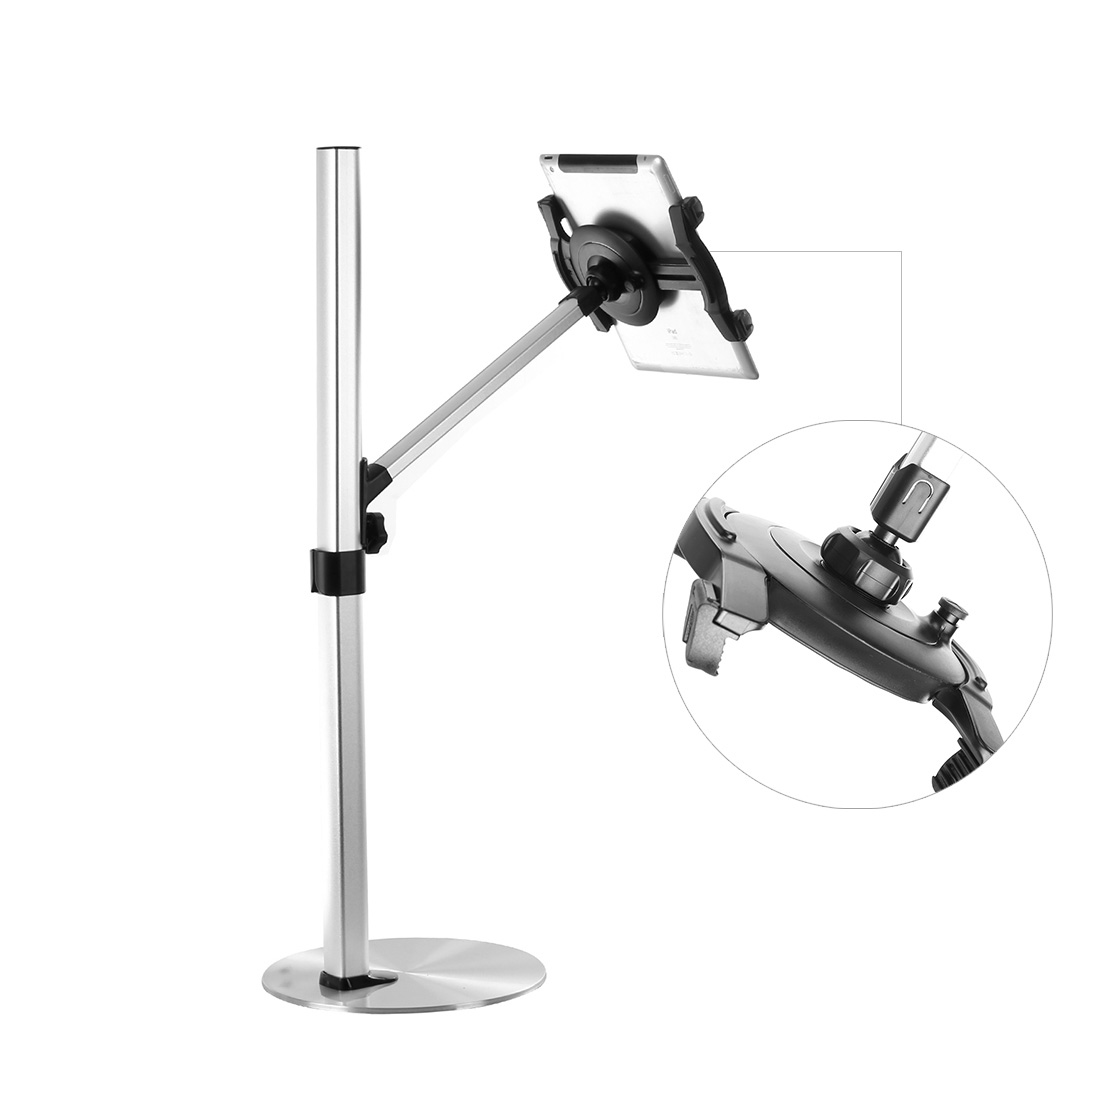 Loctek height adjustable floor standing tablet stand mount X2N